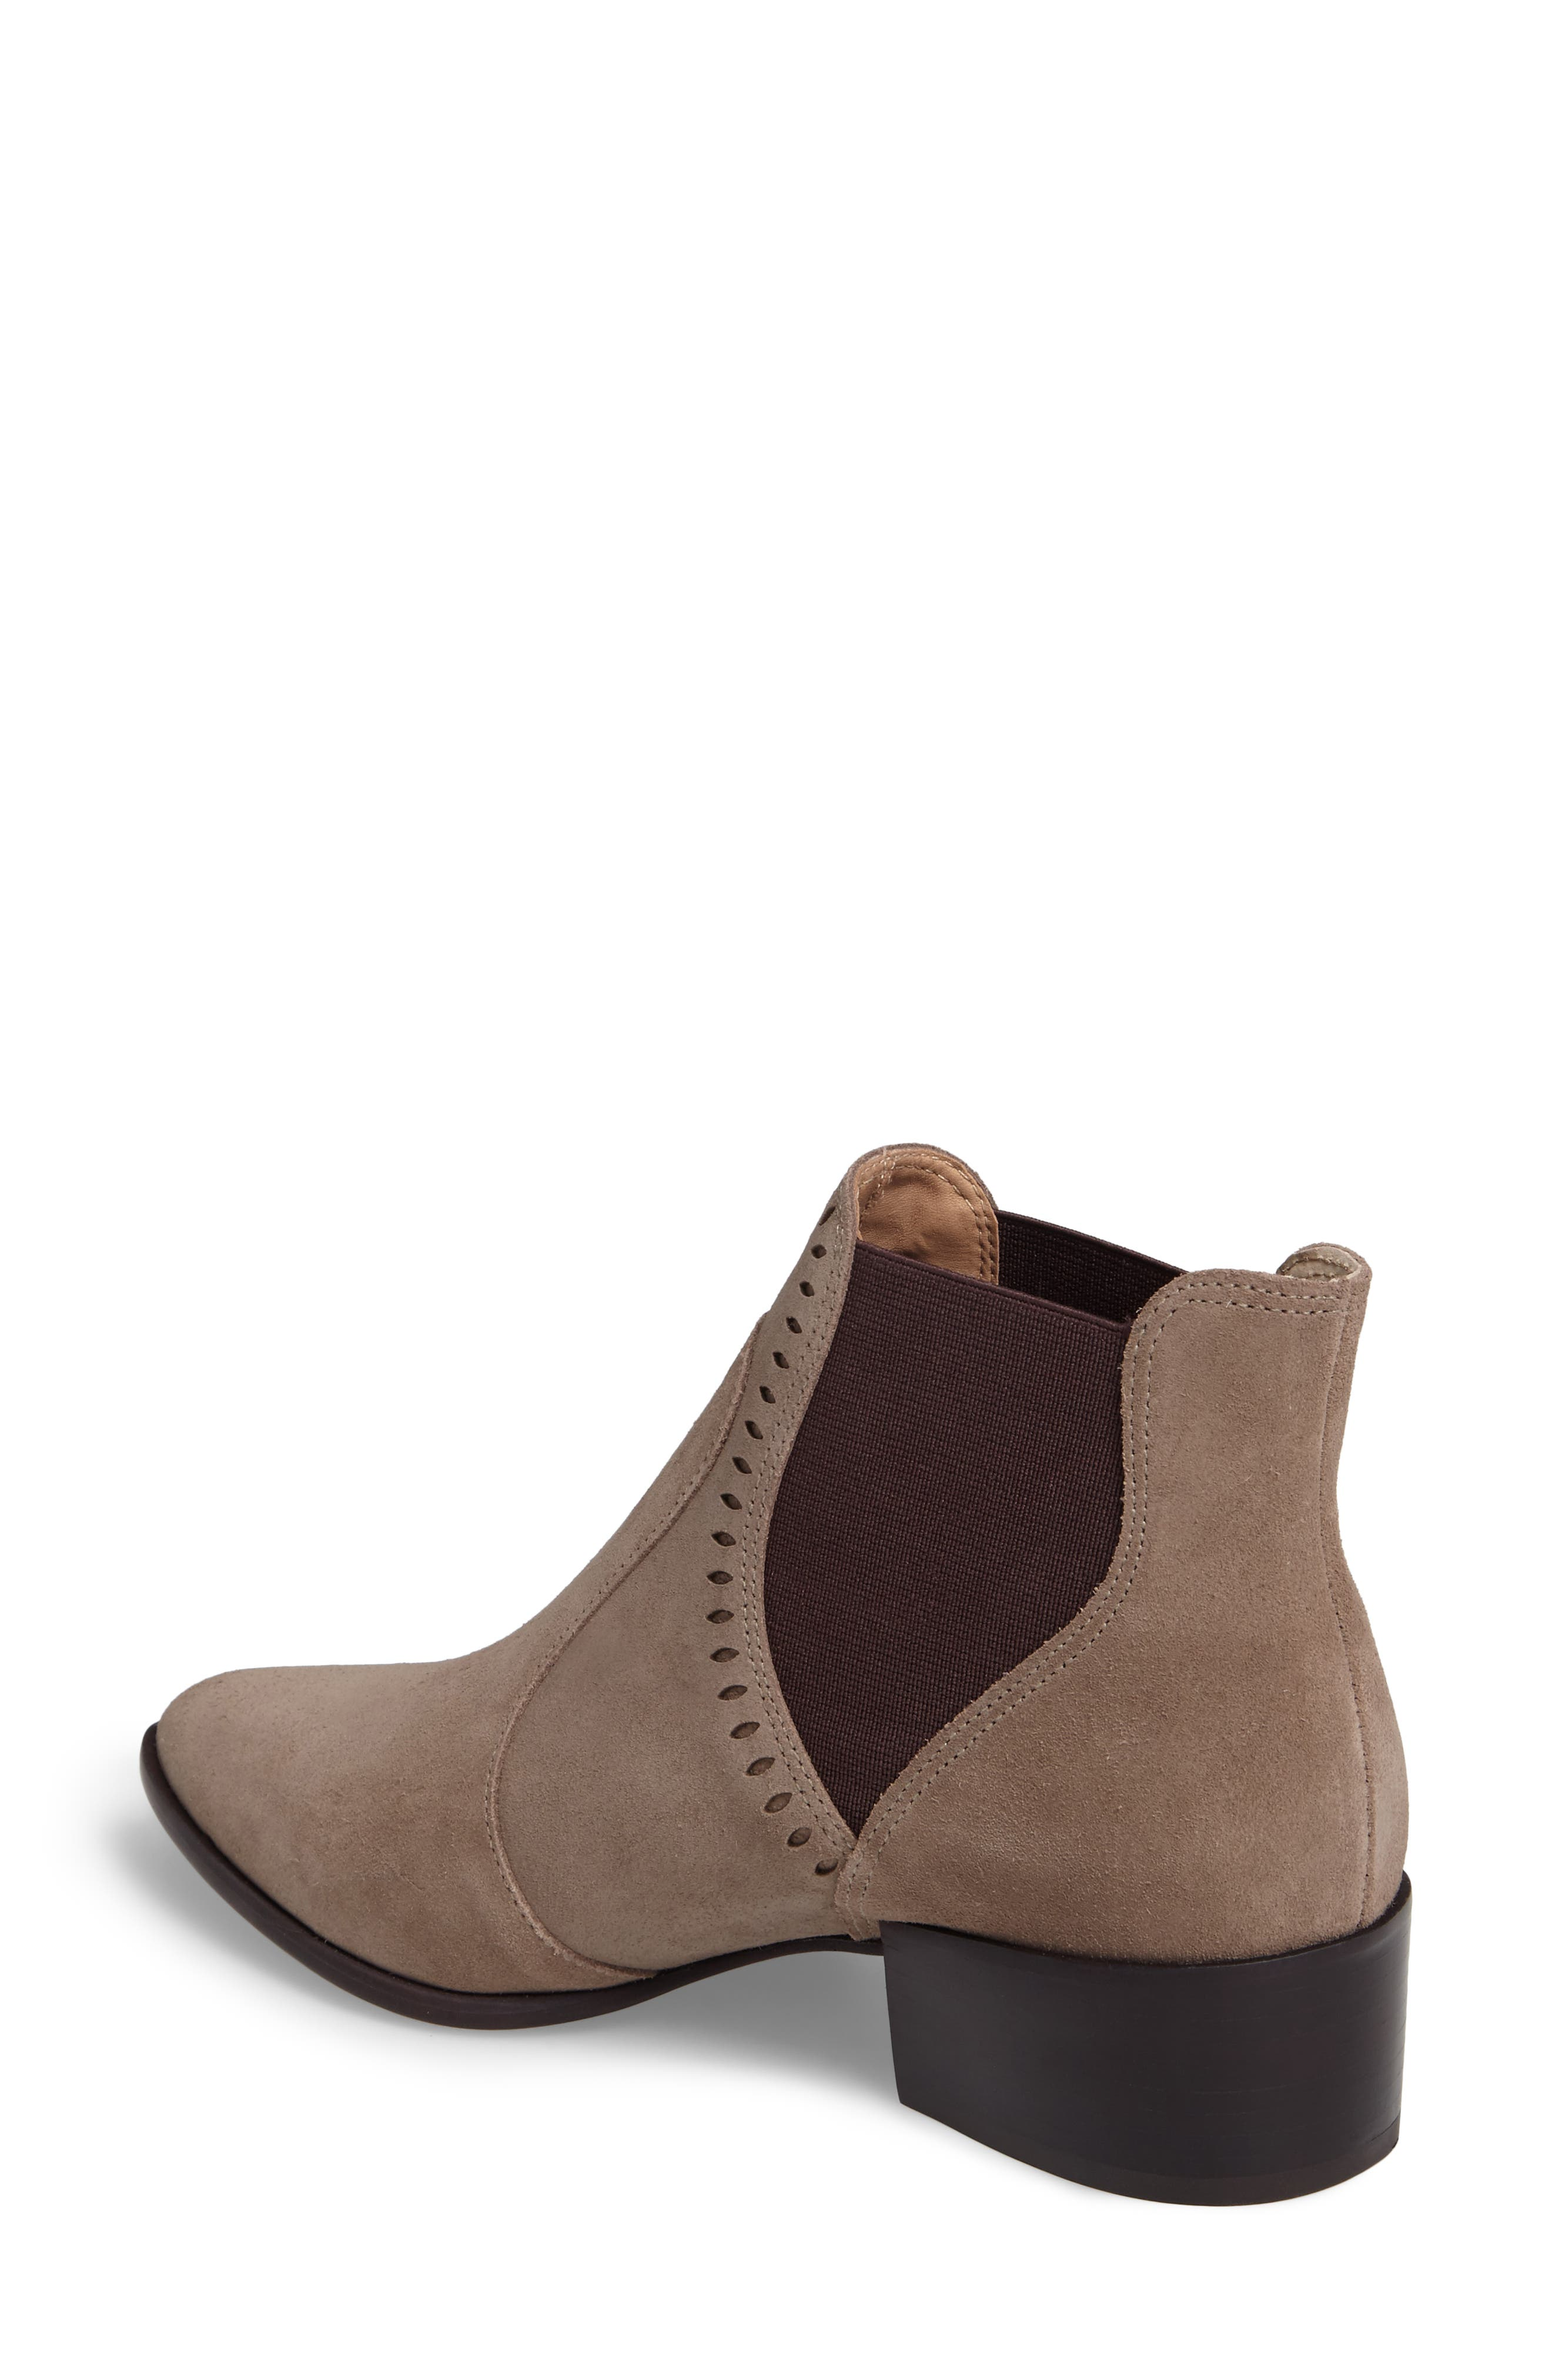 Alternate Image 2  - Klub Nico Zafira Chelsea Boot (Women)